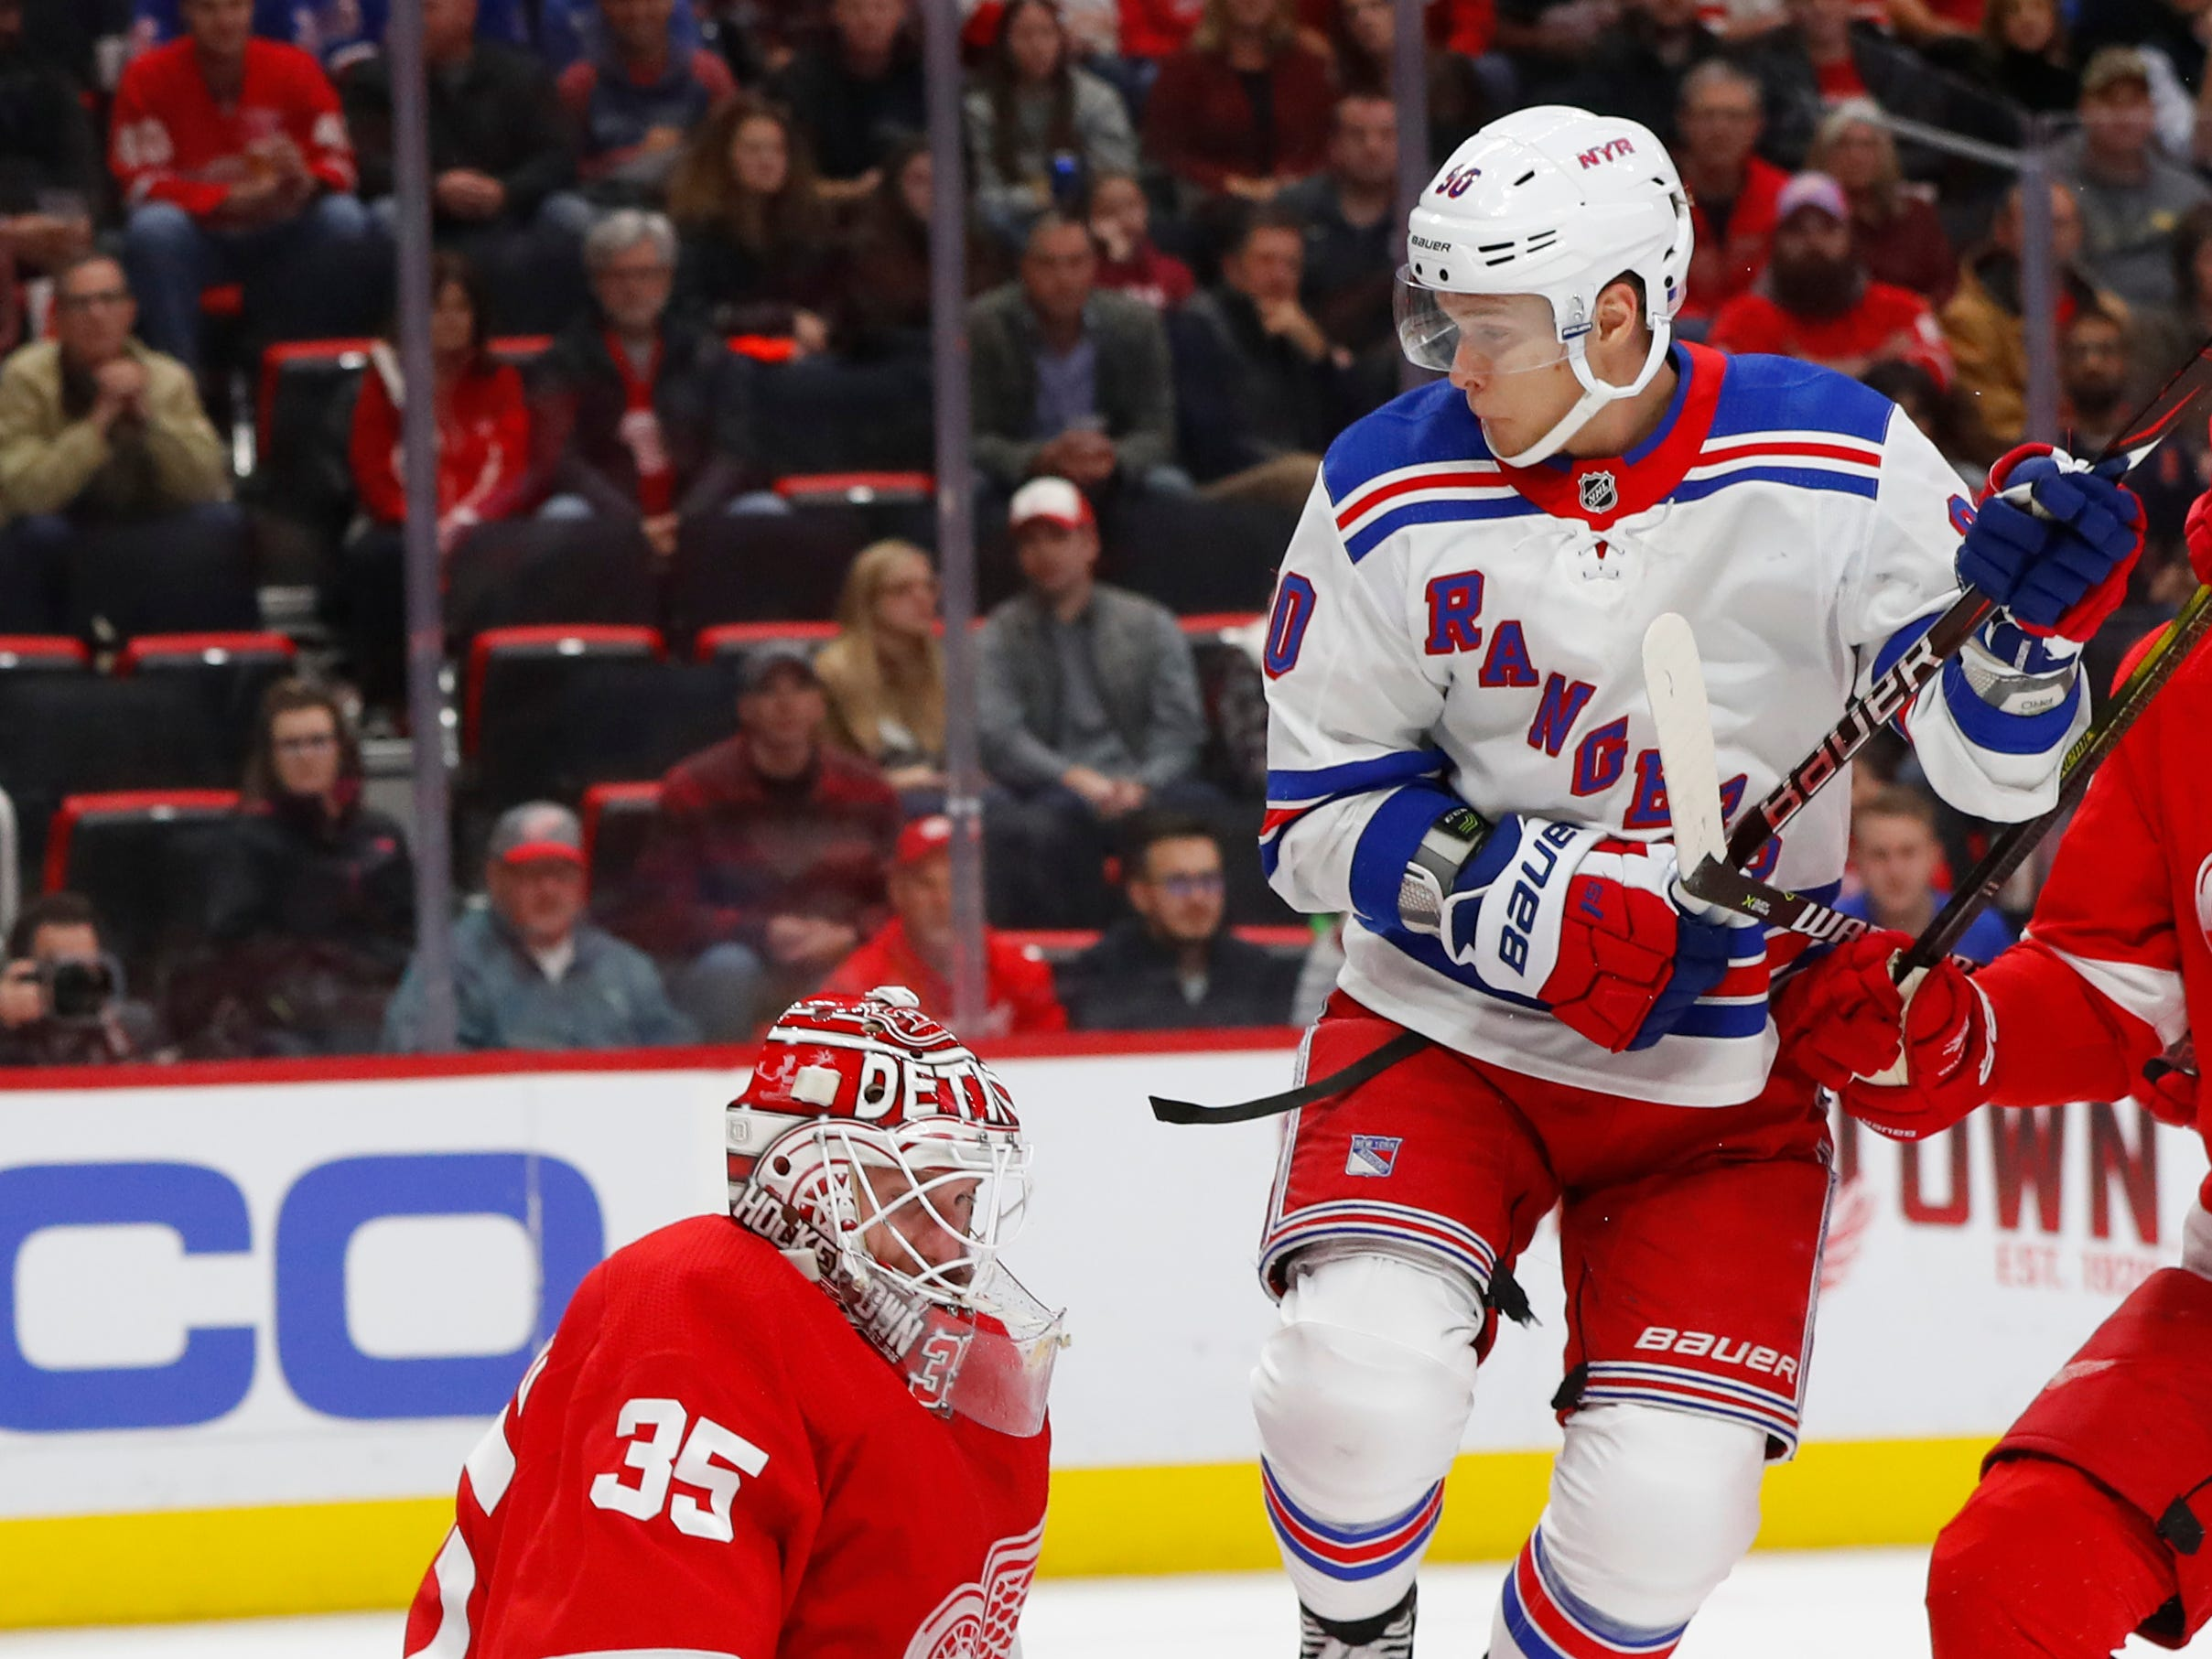 Detroit Red Wings goalie Jimmy Howard (35) stops a shot as New York Rangers' Vladislav Nameestnikov (90) jumps out of the way In the first period of an NHL hockey game in Detroit, Friday, Nov. 9, 2018.